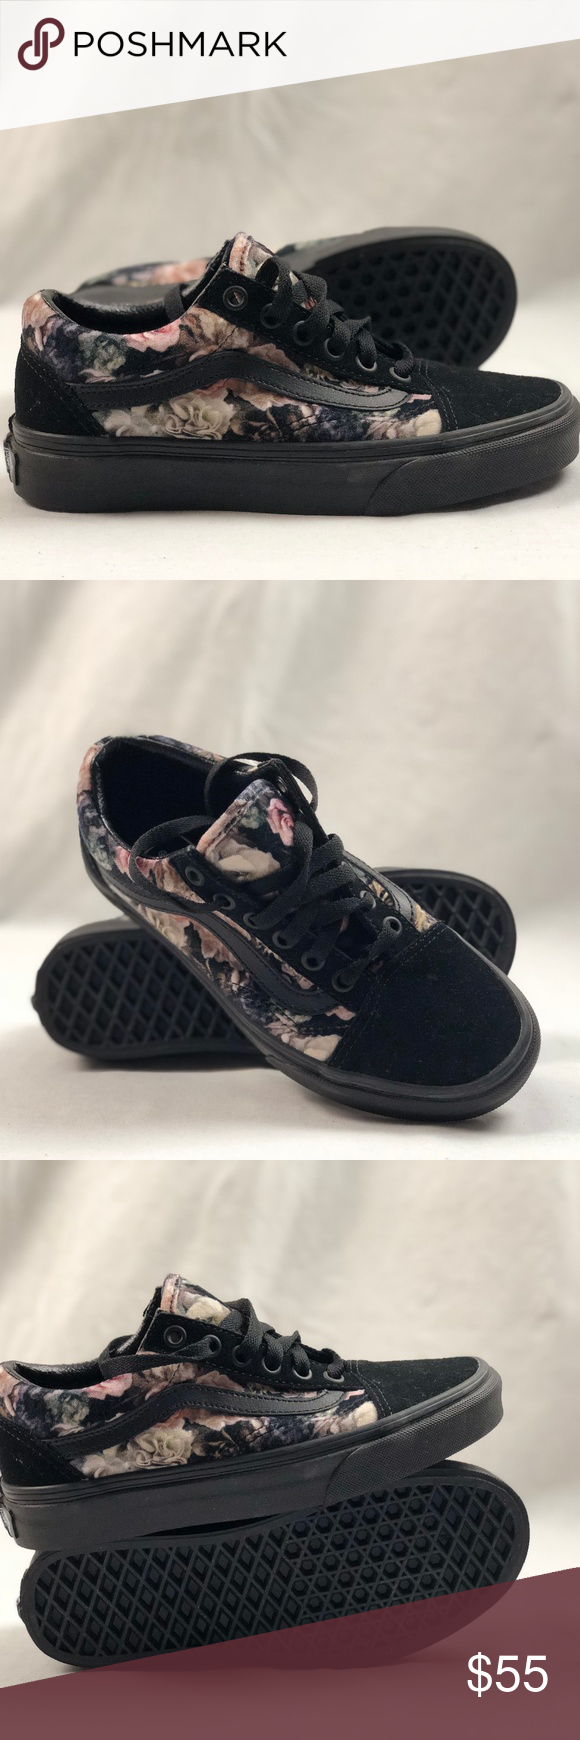 f778bba0a31072 Vans Old Skool Velvet Floral Black Sneakers. Vans Old Skool Velvet Floral  Black Sneakers. Condition  New with box. Size  Women s 5